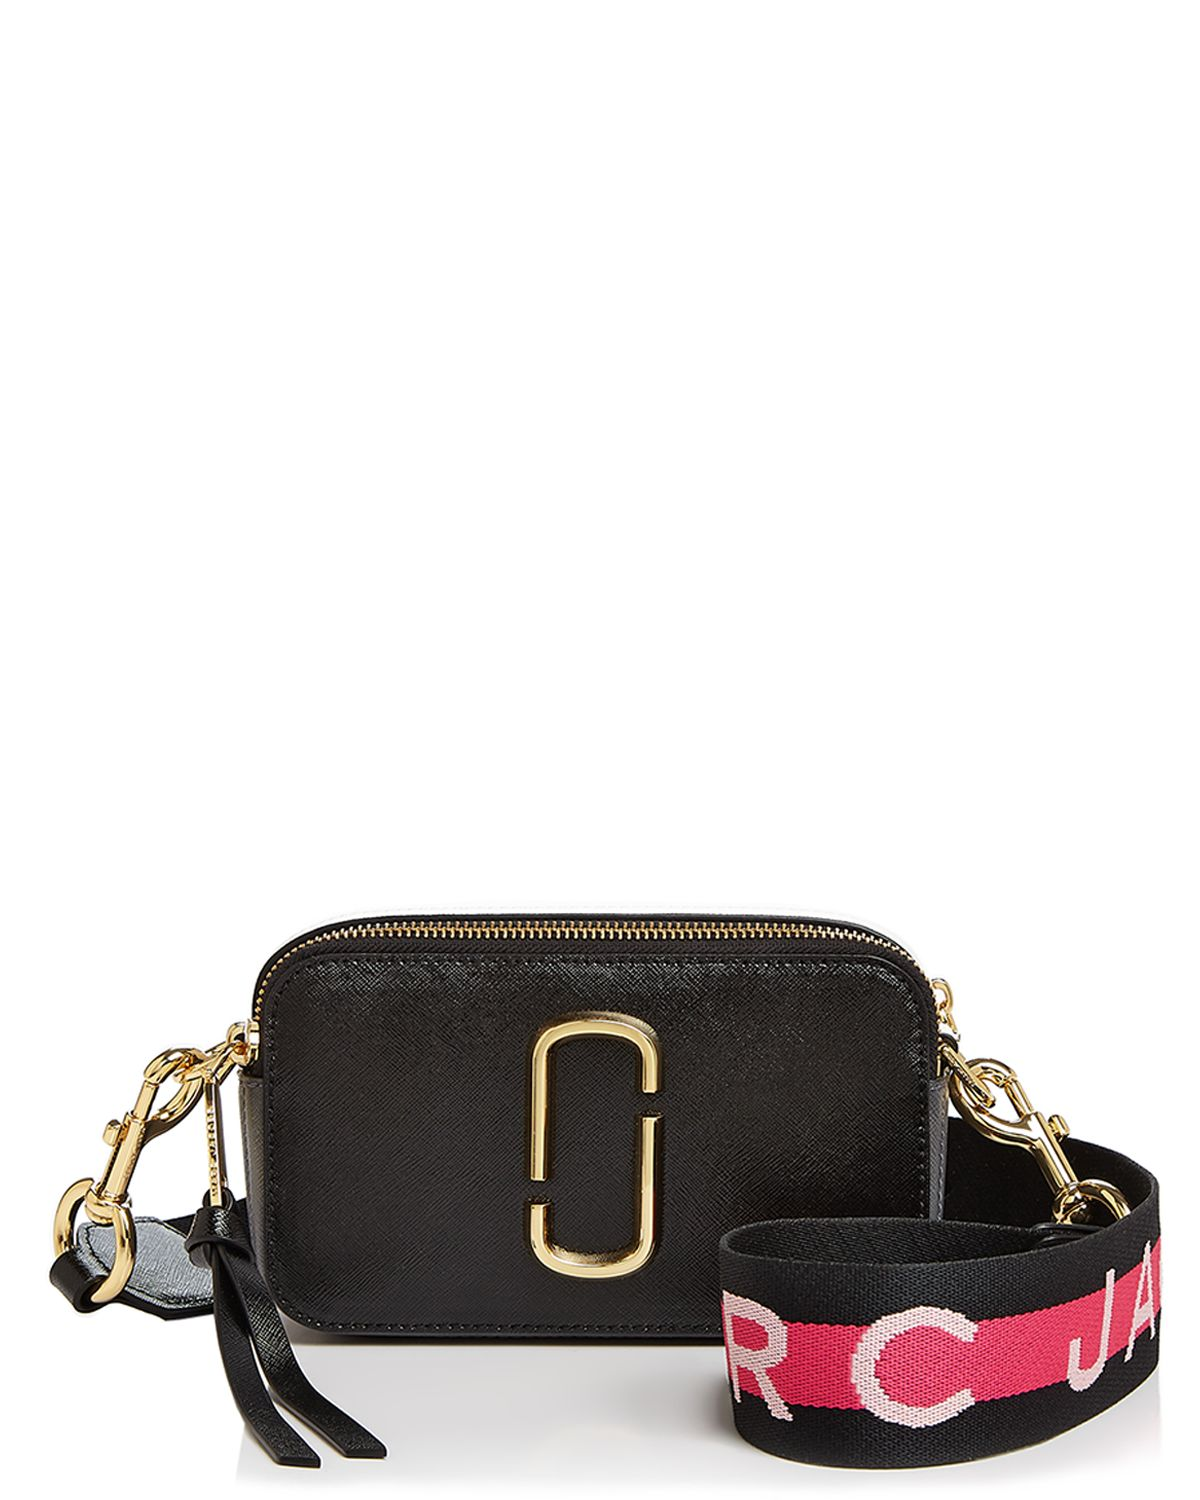 Snapshot Saffiano Leather Crossbody by Marc Jacobs